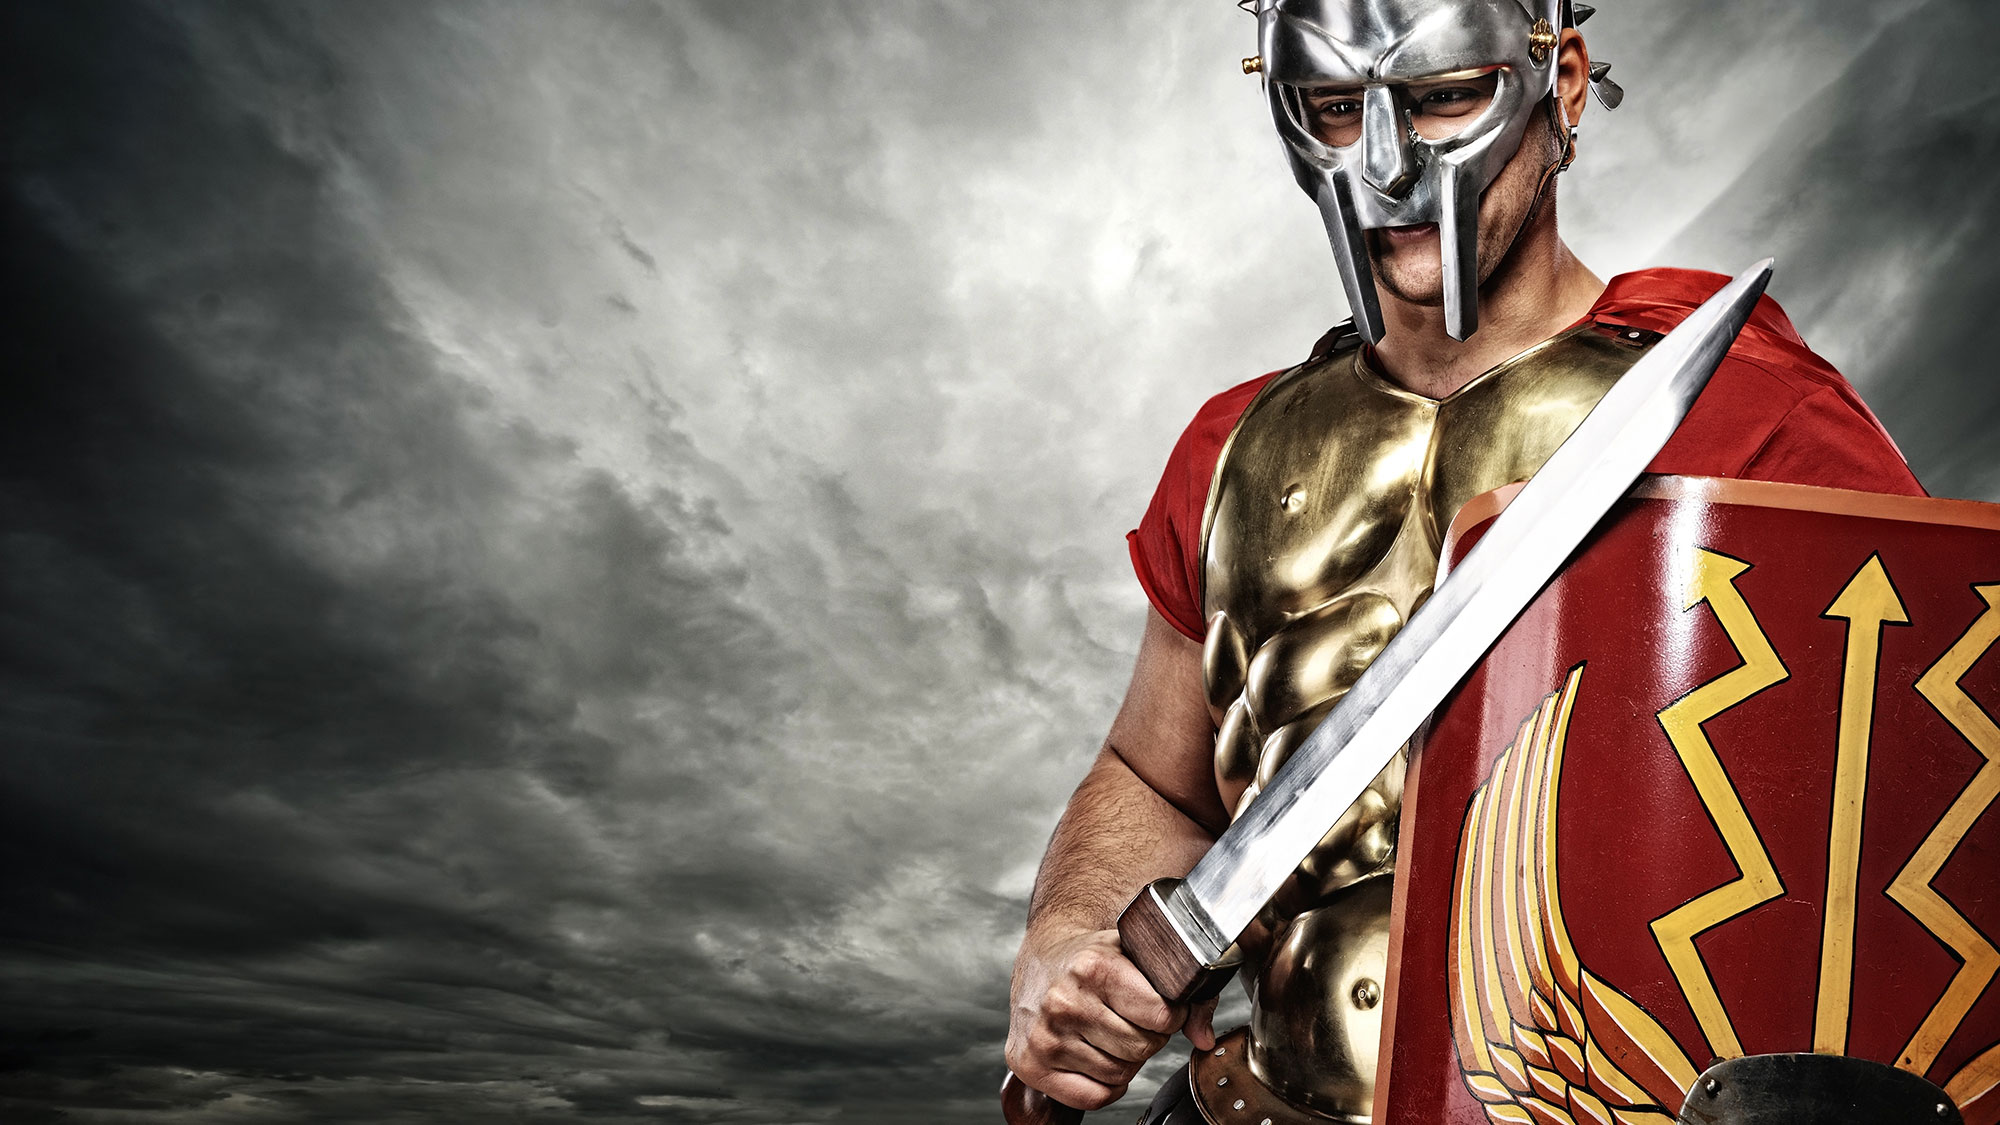 A Spartan soldier with armor and a sword.